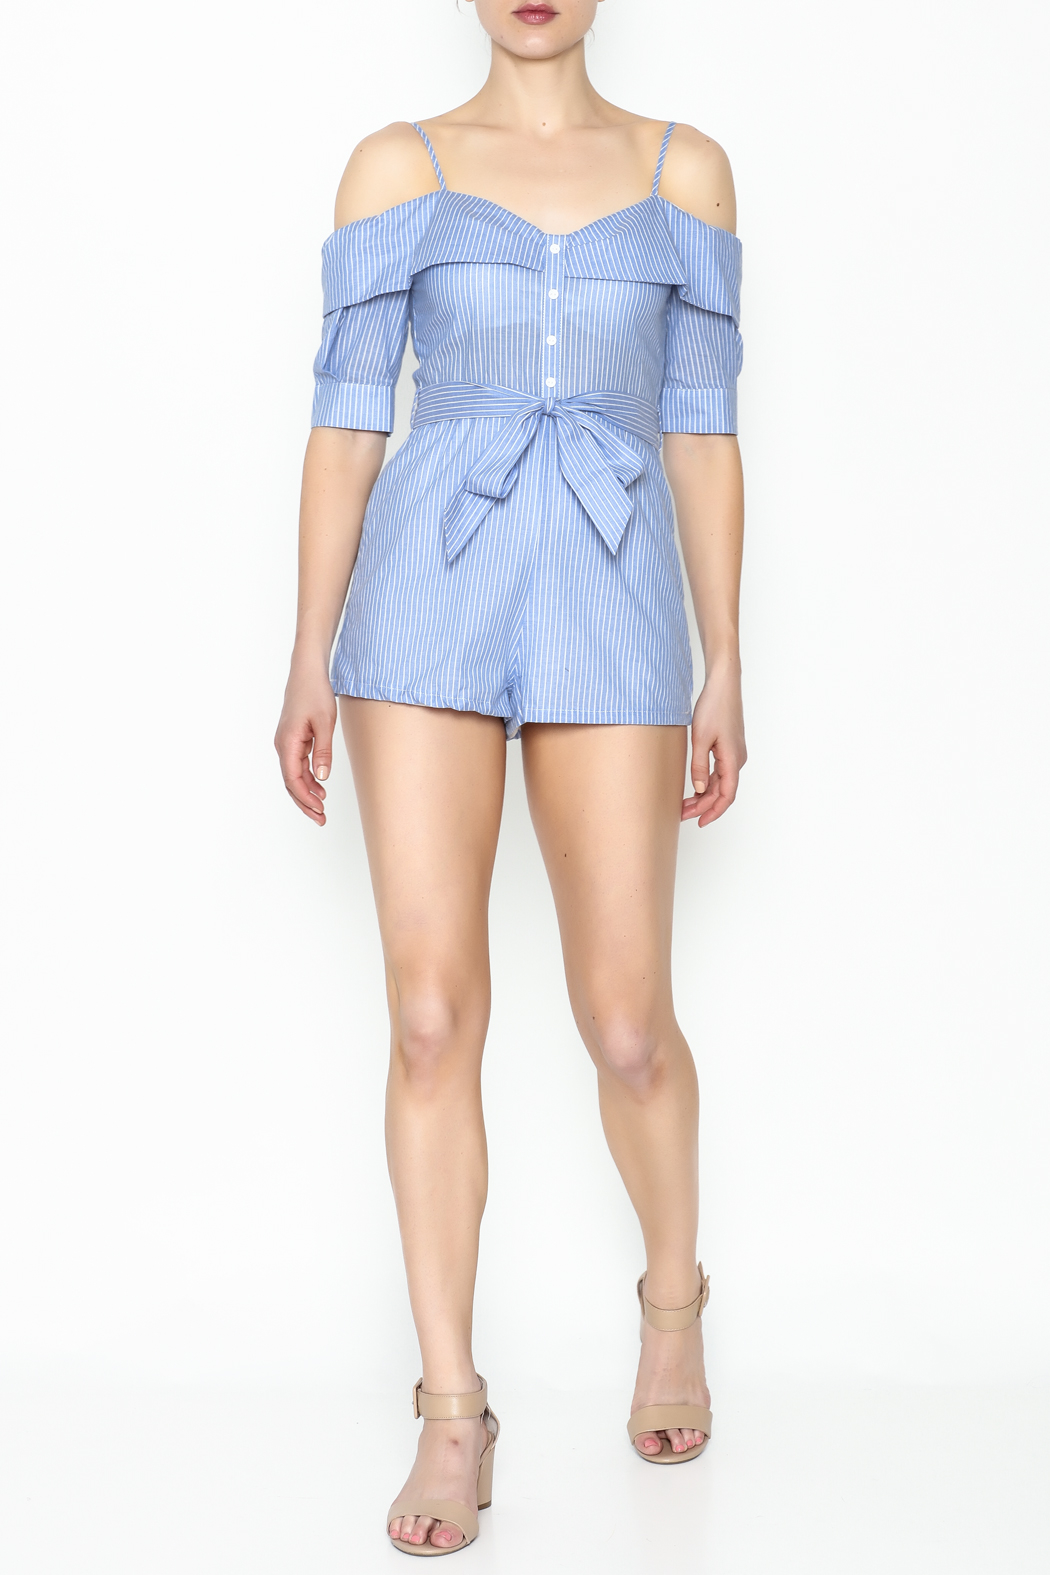 Favlux Striped Romper - Side Cropped Image